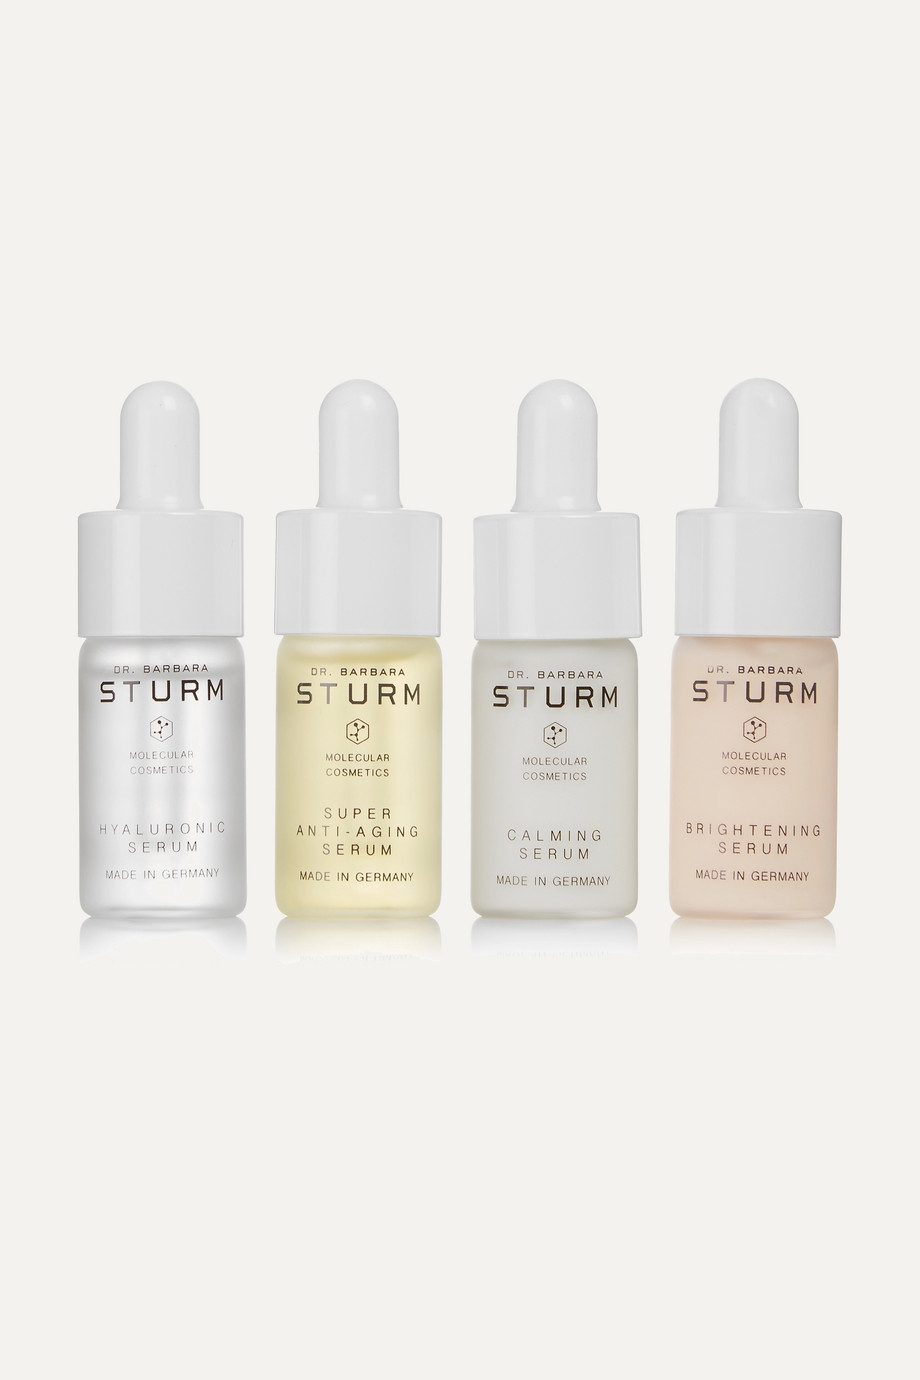 DR. BARBARA STURM Serum Discovery Set, 4 x 10ml